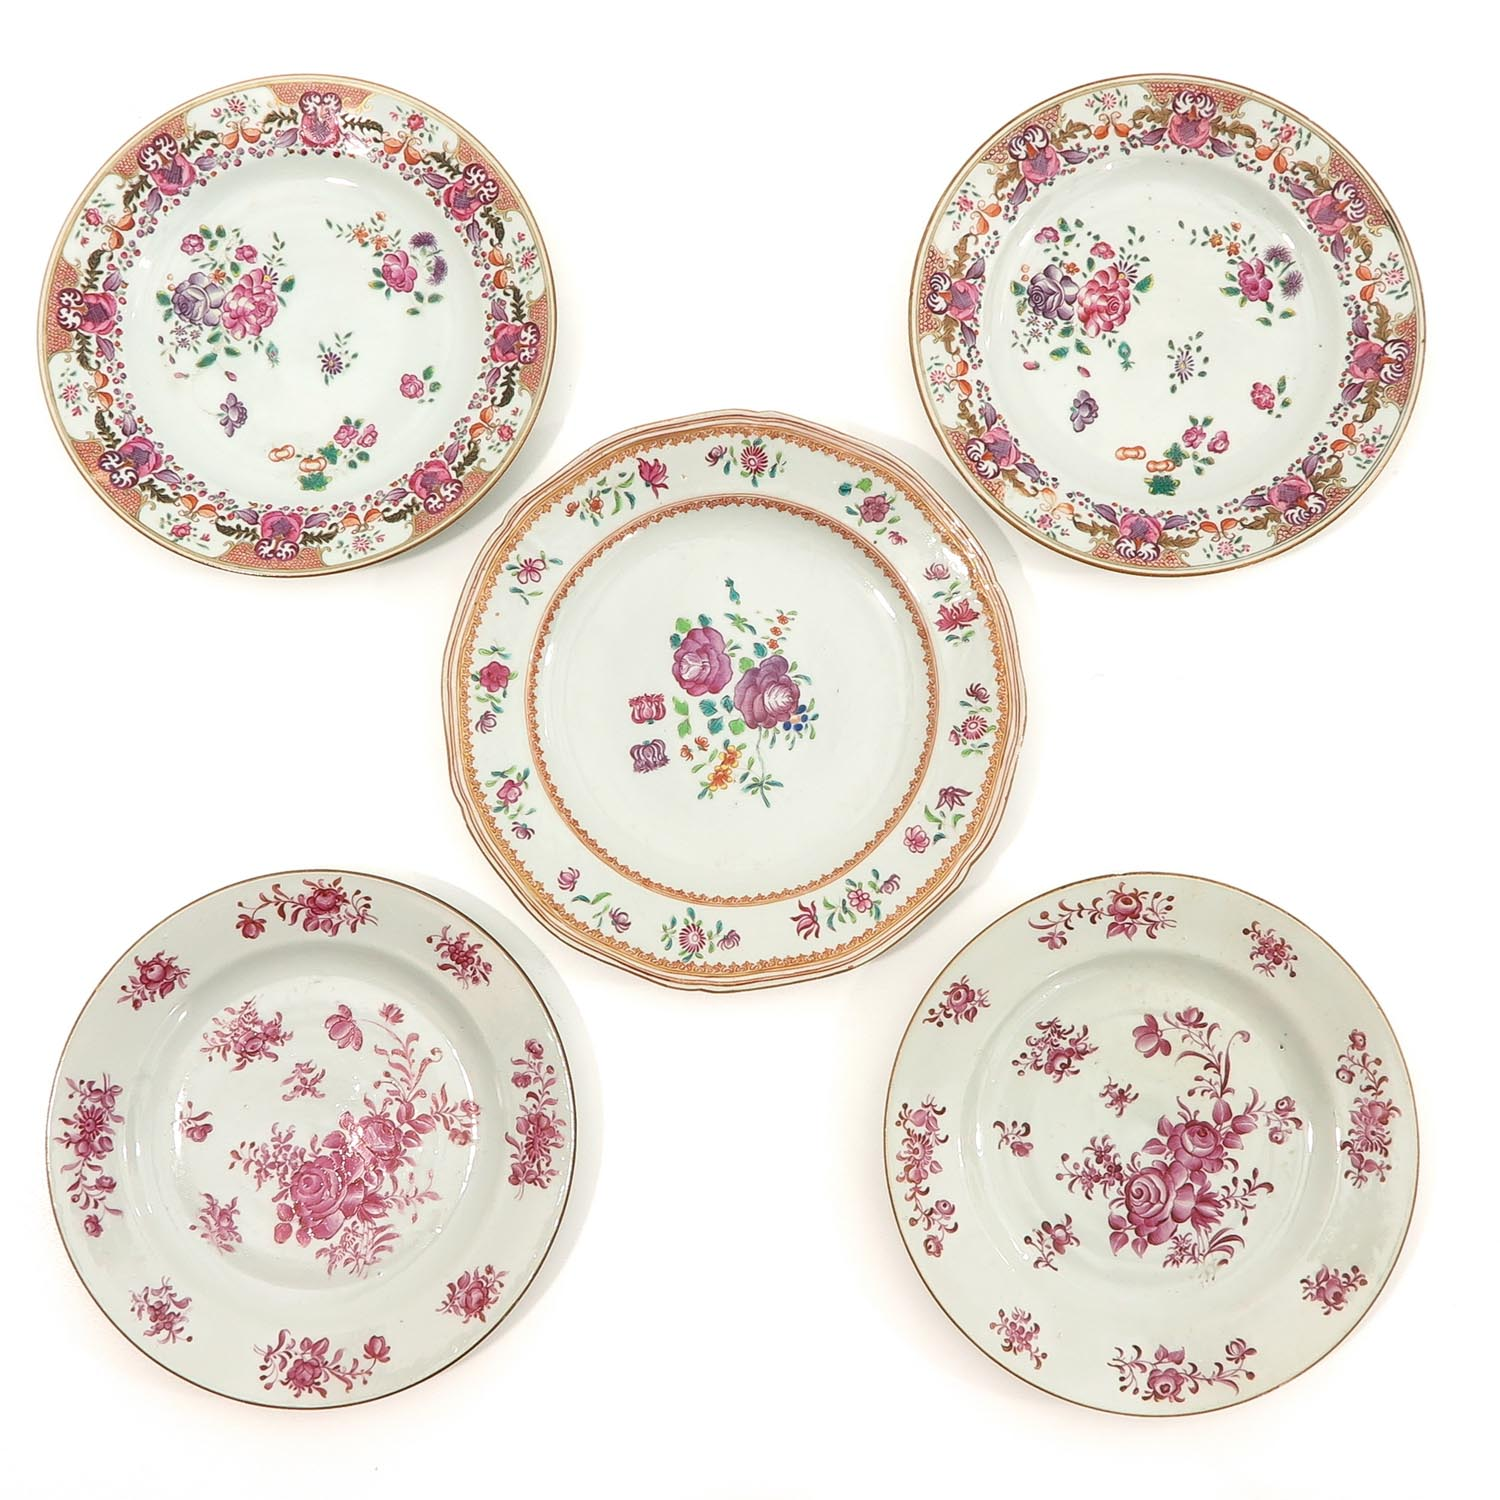 A Collection of 5 Famille Rose Plates